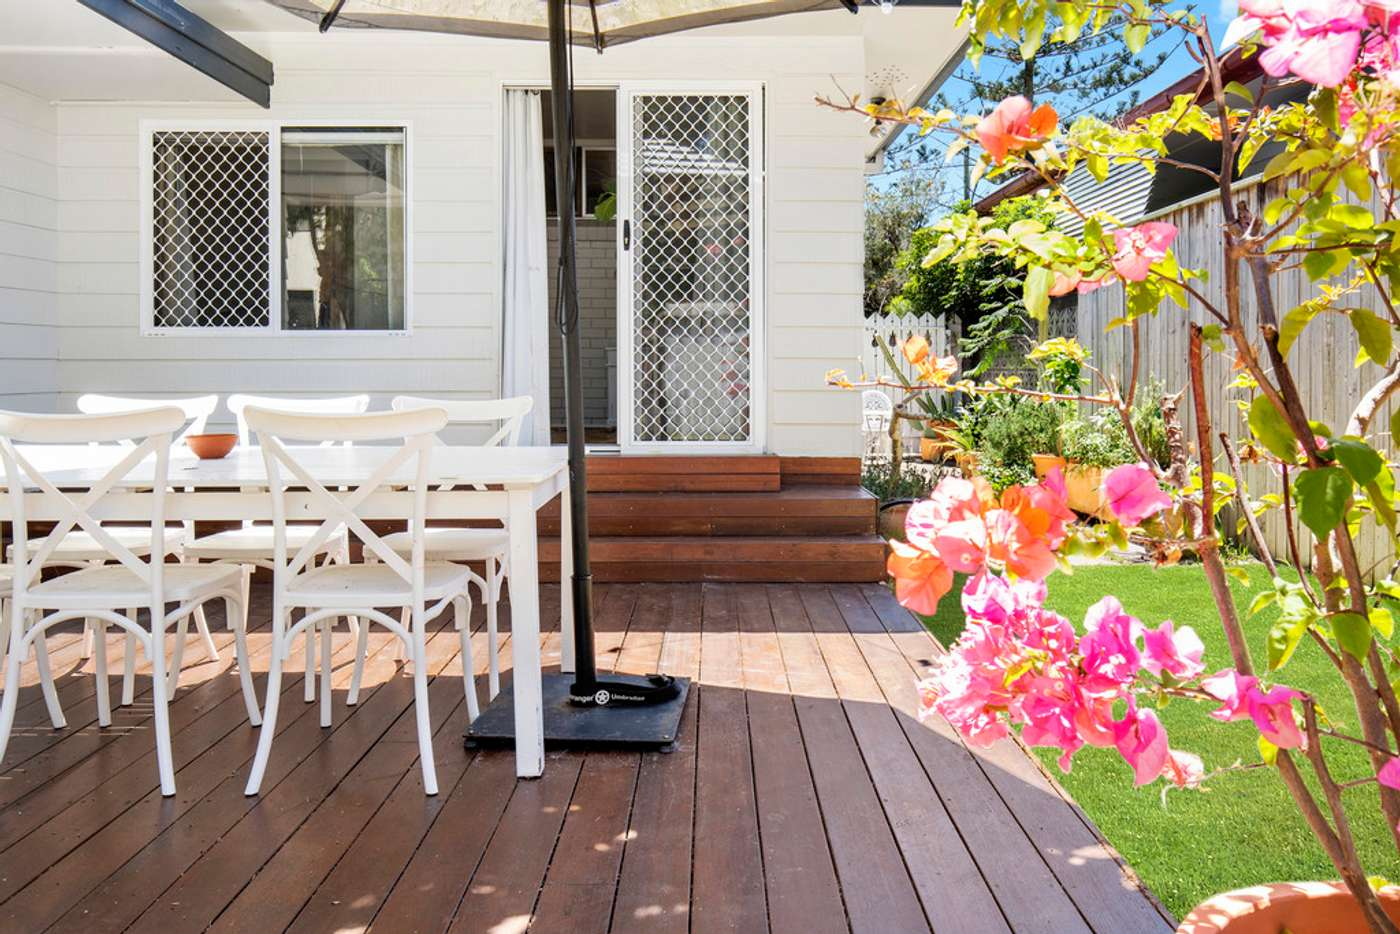 Sixth view of Homely house listing, 12 Markeri Street, Mermaid Beach QLD 4218